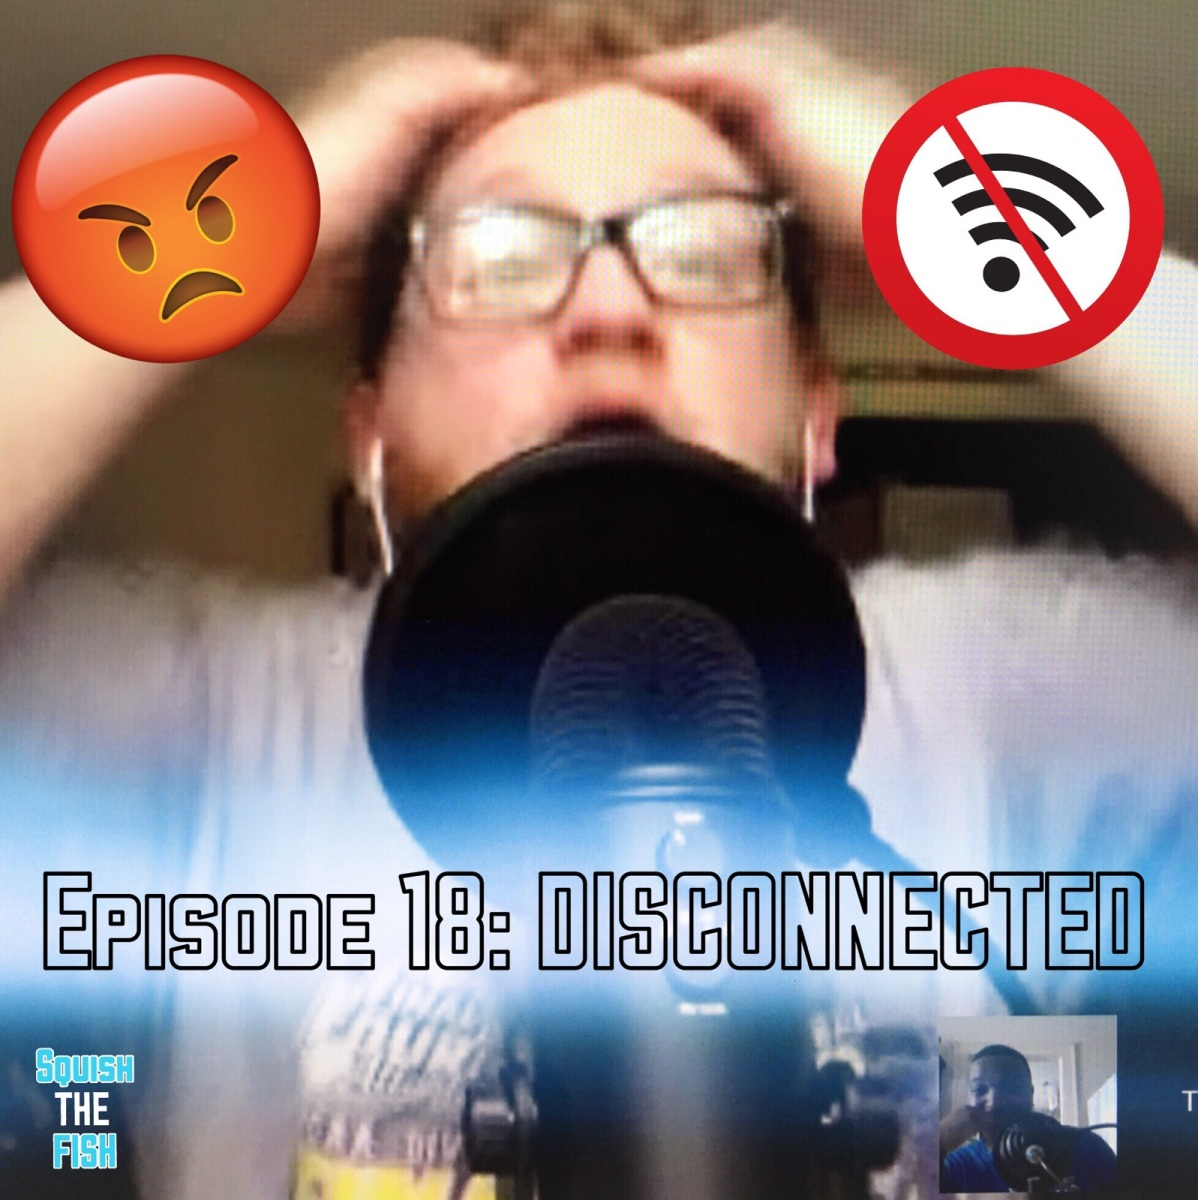 Squish the Fish ep. 18: Disconnected